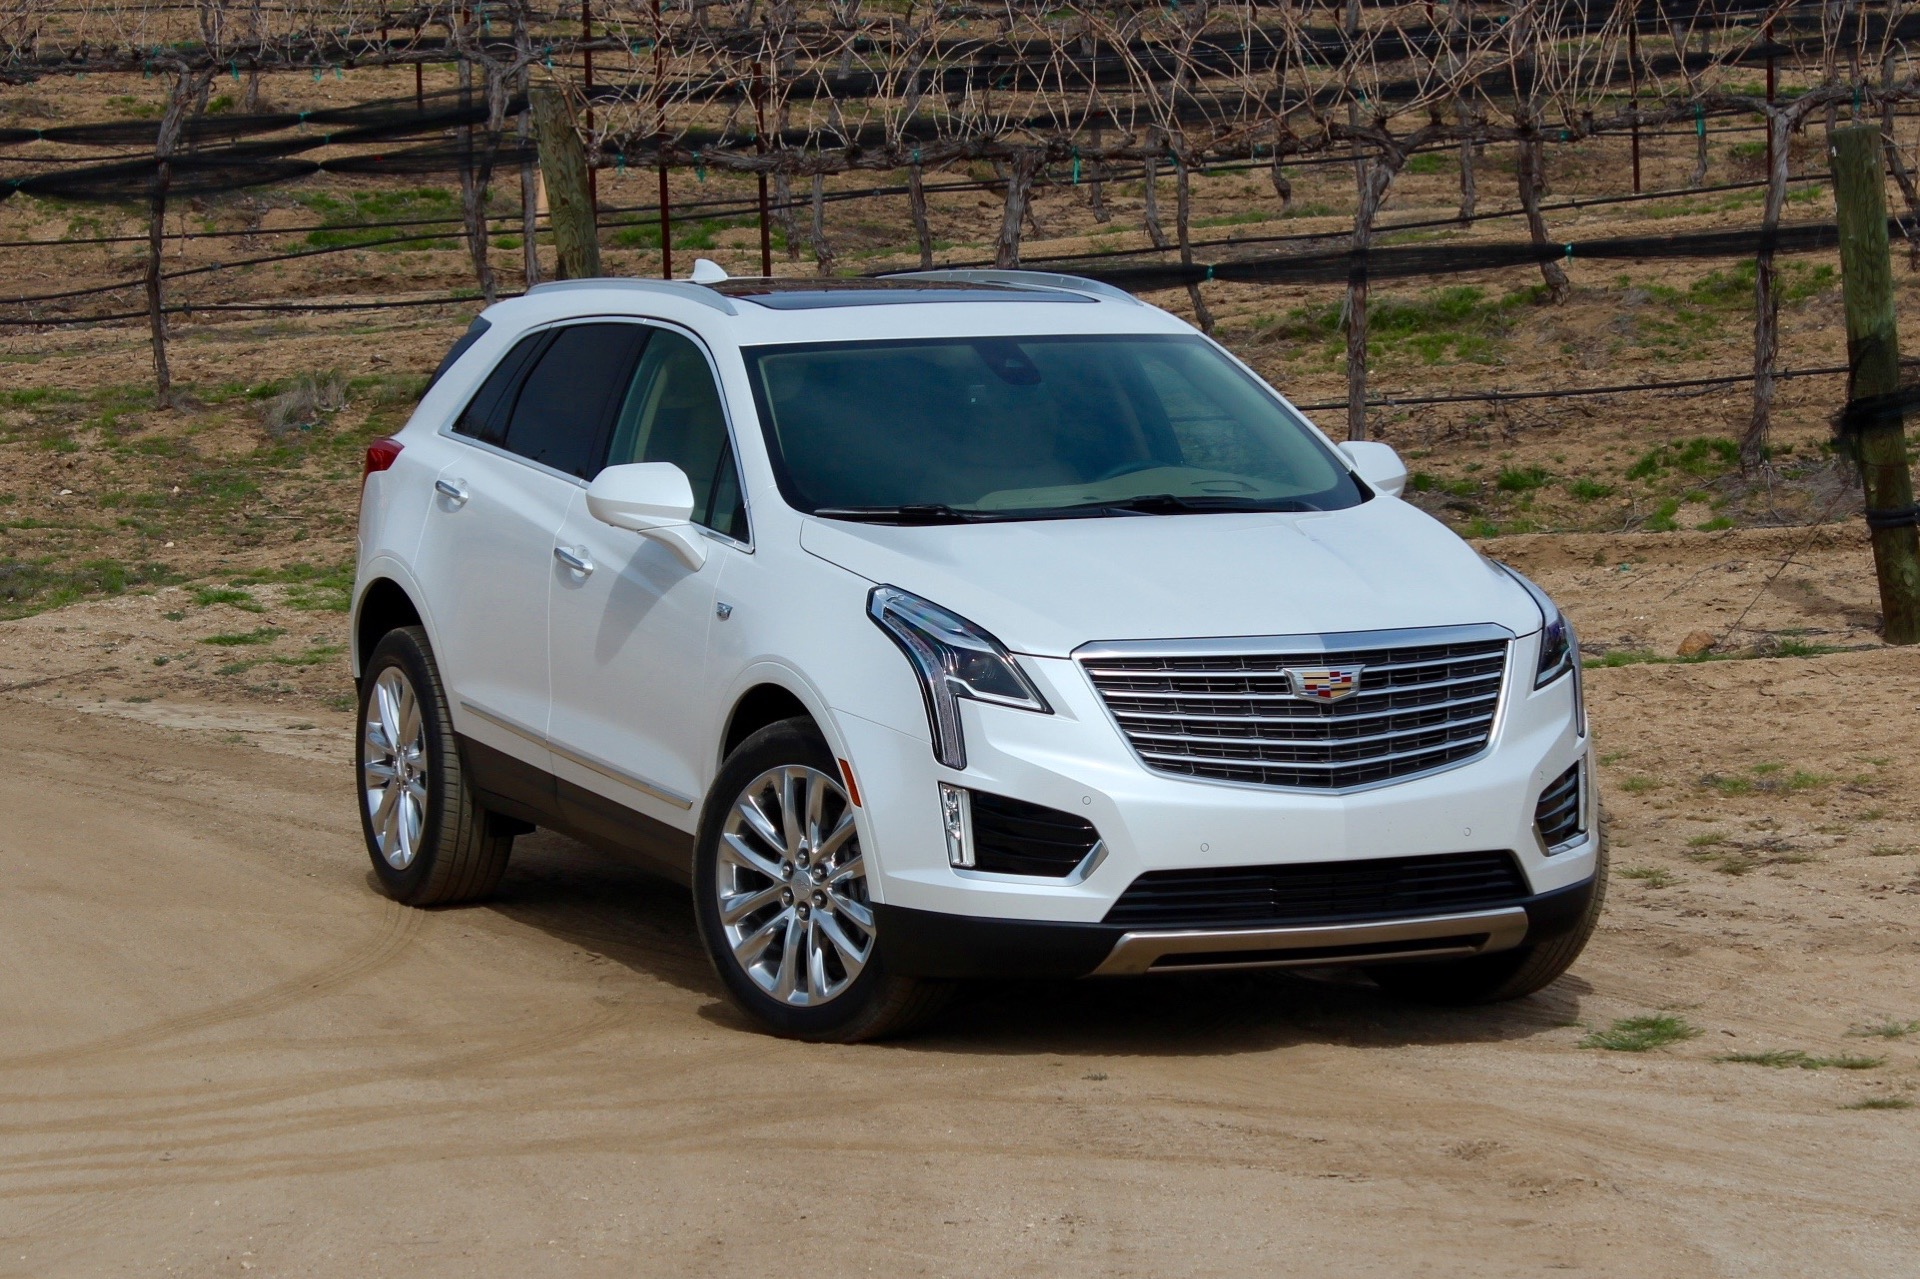 All-new Cadillac XT5 earns Top Safety Pick+ from the IIHS